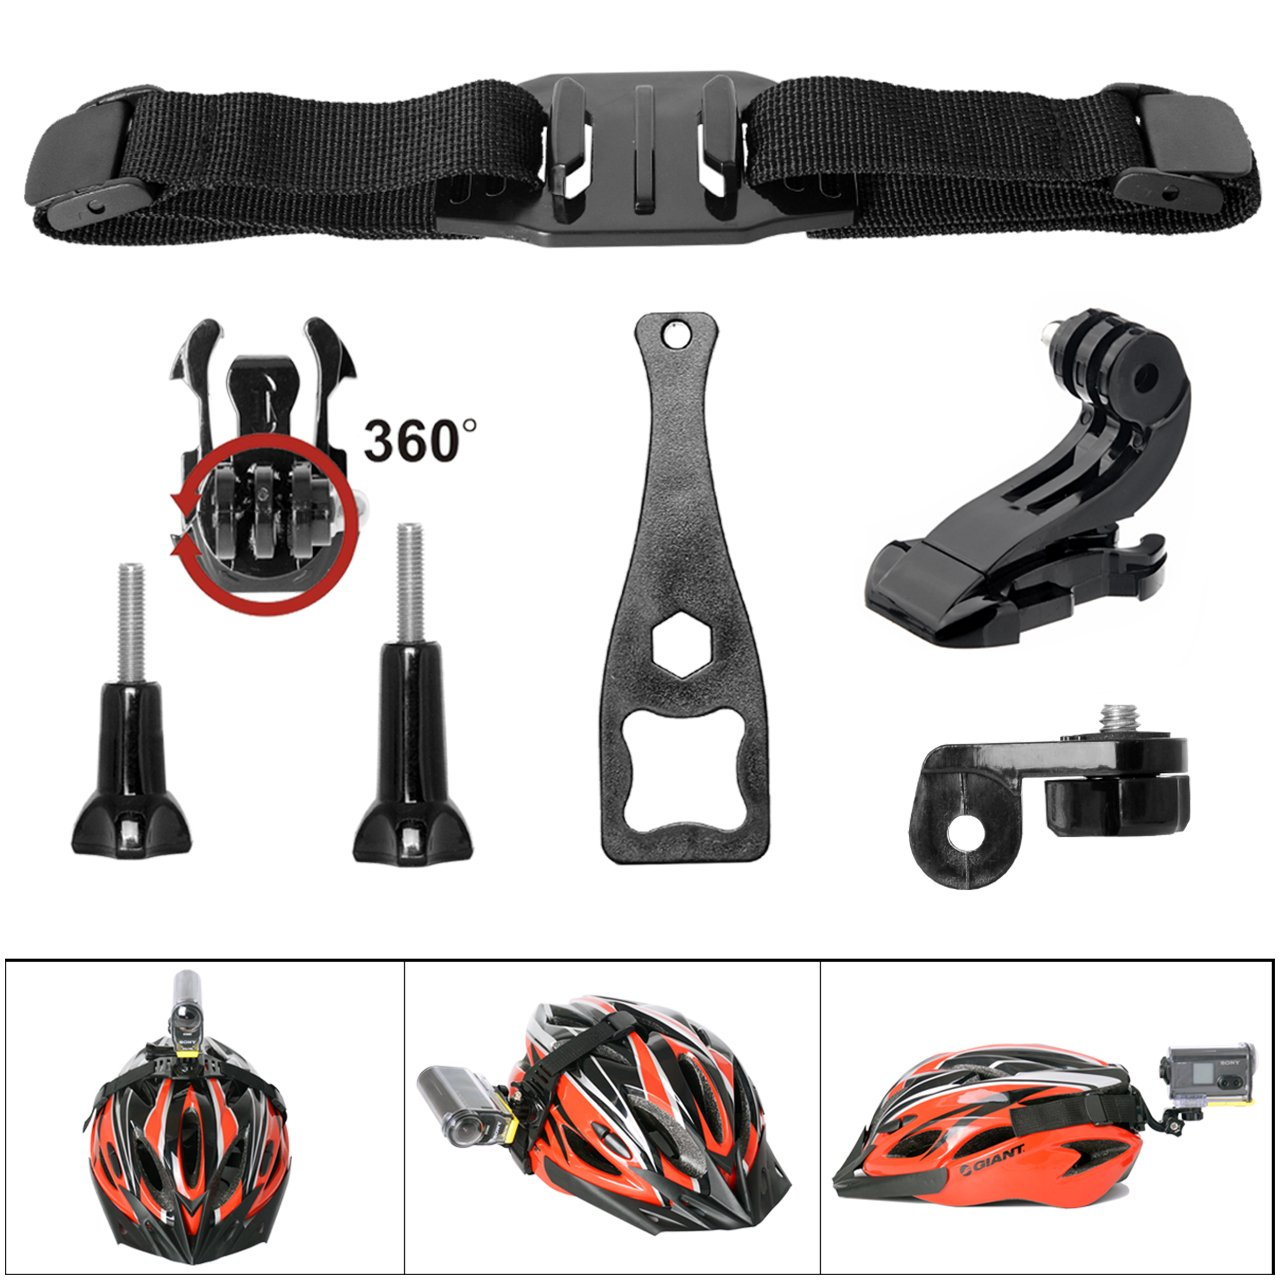 Victool Action Camera 360 Degree 7in1 Vented Helmet Strap Mount Kit for GoPro Helmet Mount for SONY FDR X-3000V X1000VR HDR AS 300 AS-10 AS-15 AS-20 AS-30 AS-50 AS-100 AS-200 AZ-1 + GoPro Action Cam